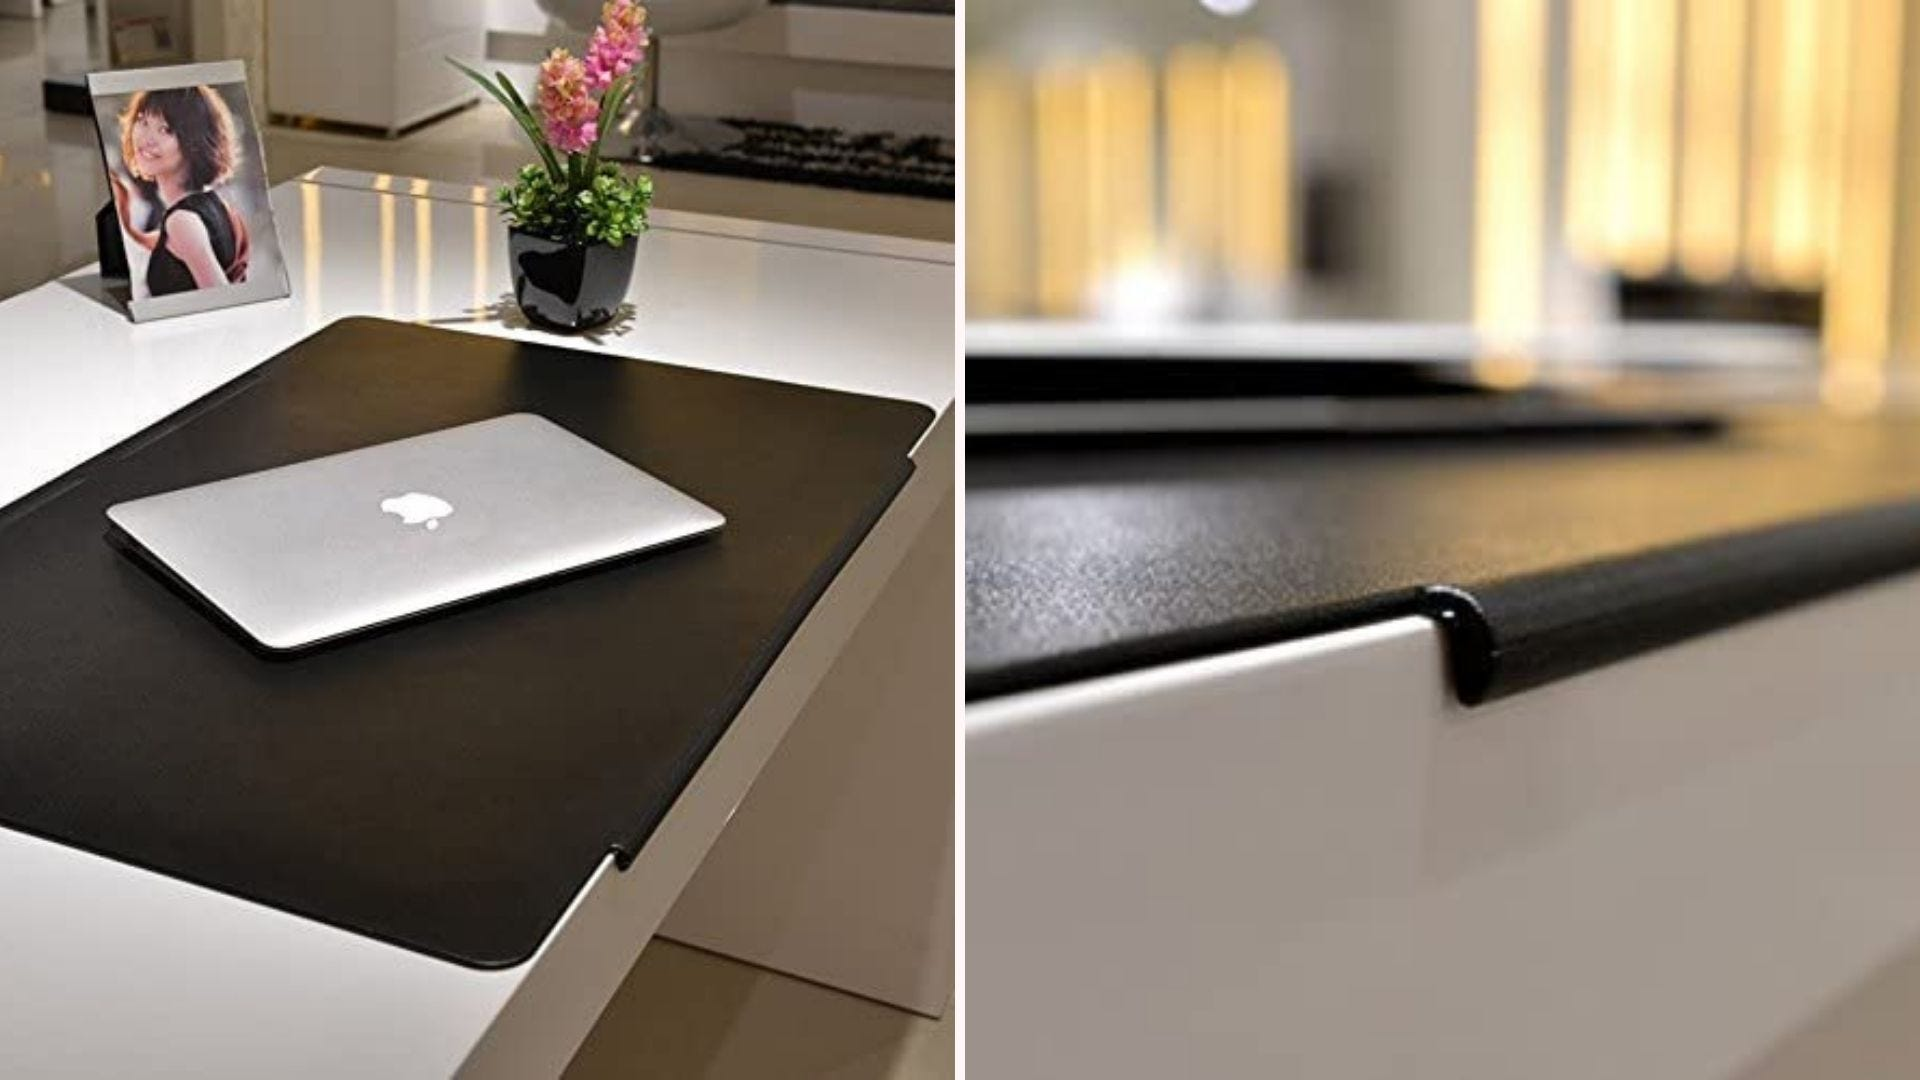 On the left, a black desk pad sits on a counter top. On the right, a close up view of the pad's hangover lip design, which wraps around the edge of the desk for a tighter hold.